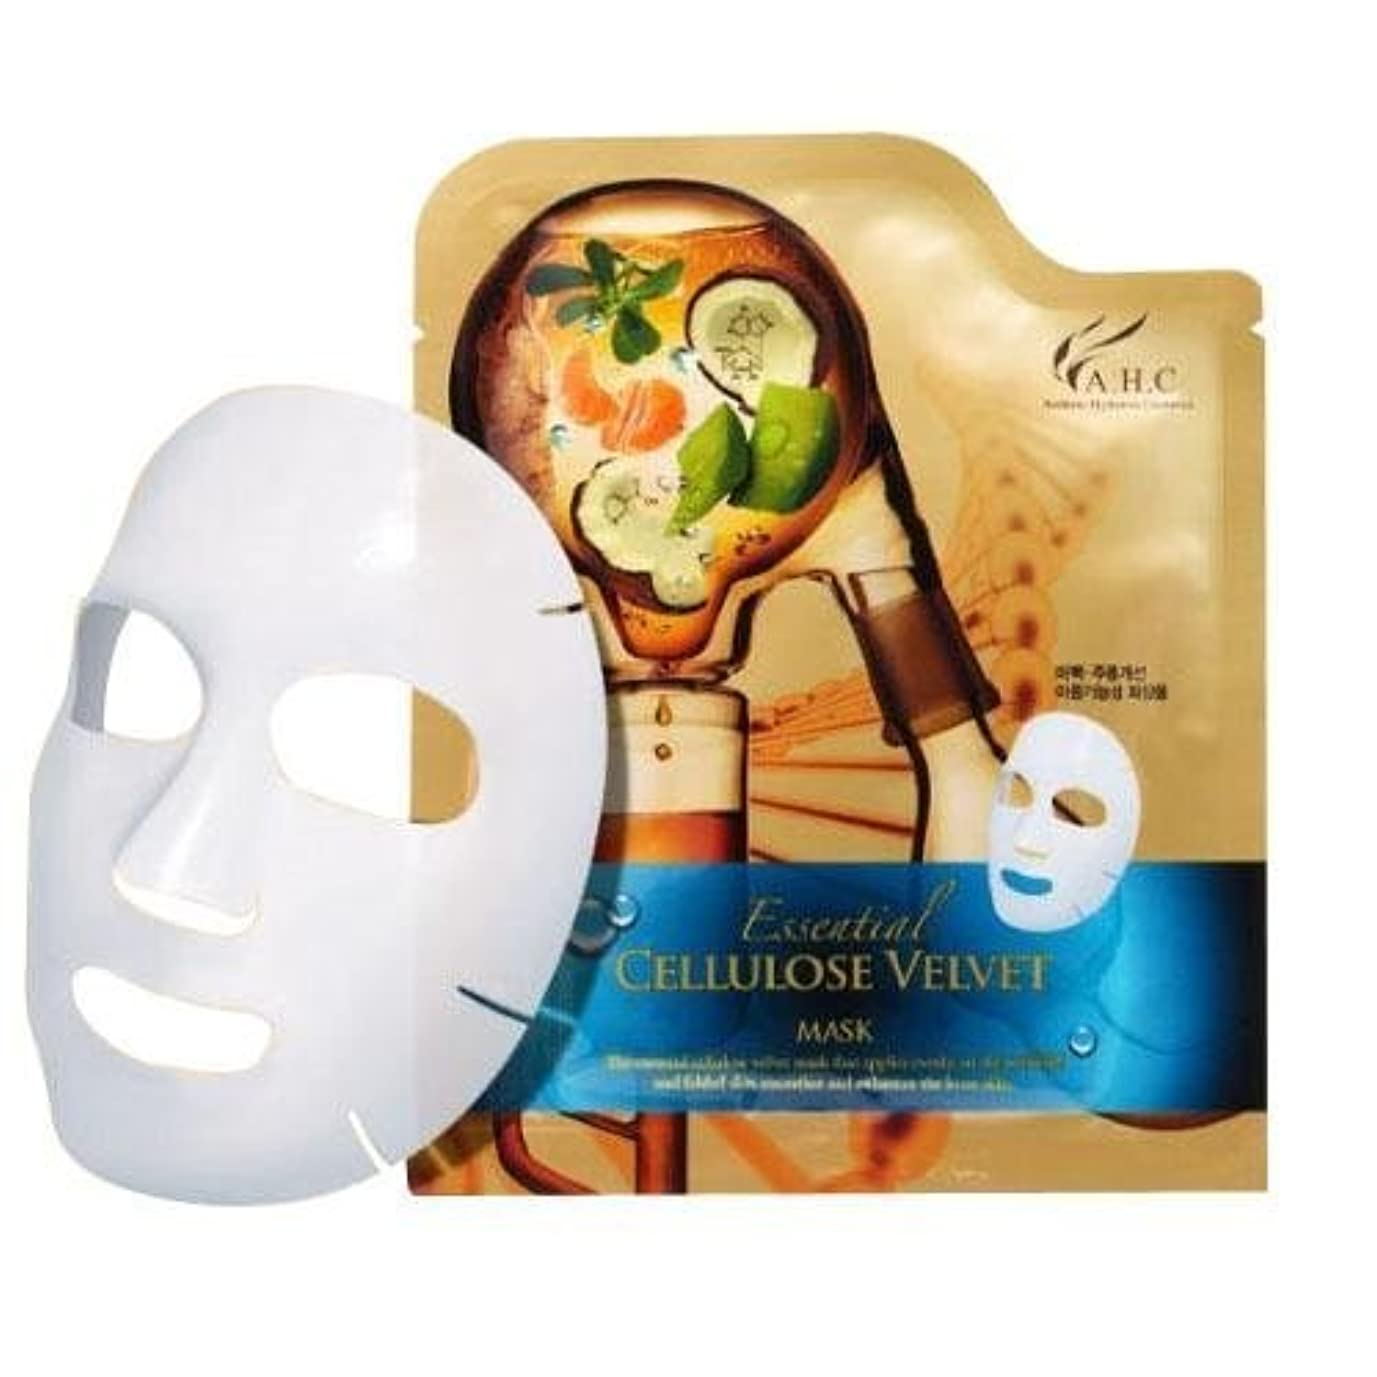 つぶす後ろ、背後、背面(部ランドマークA.H.C Essencial Cellulose Velvet Mask (30g*1EA)/ Made in Korea